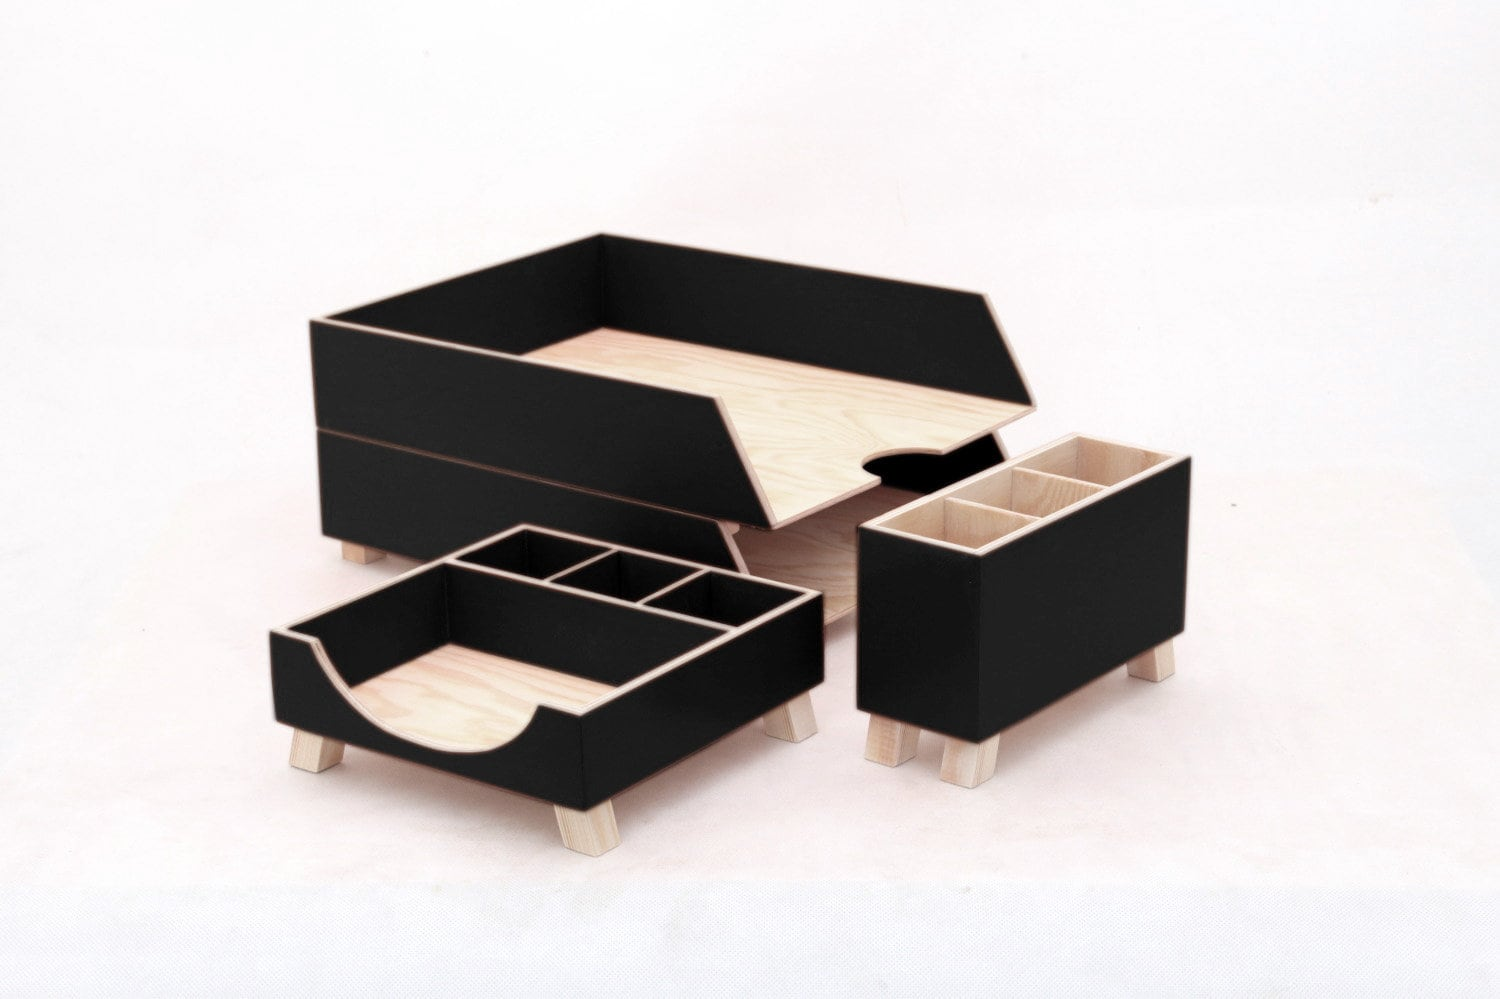 Wood Desk Organizer Set Black Wood Desk Organizer Desk Accessories Black Office